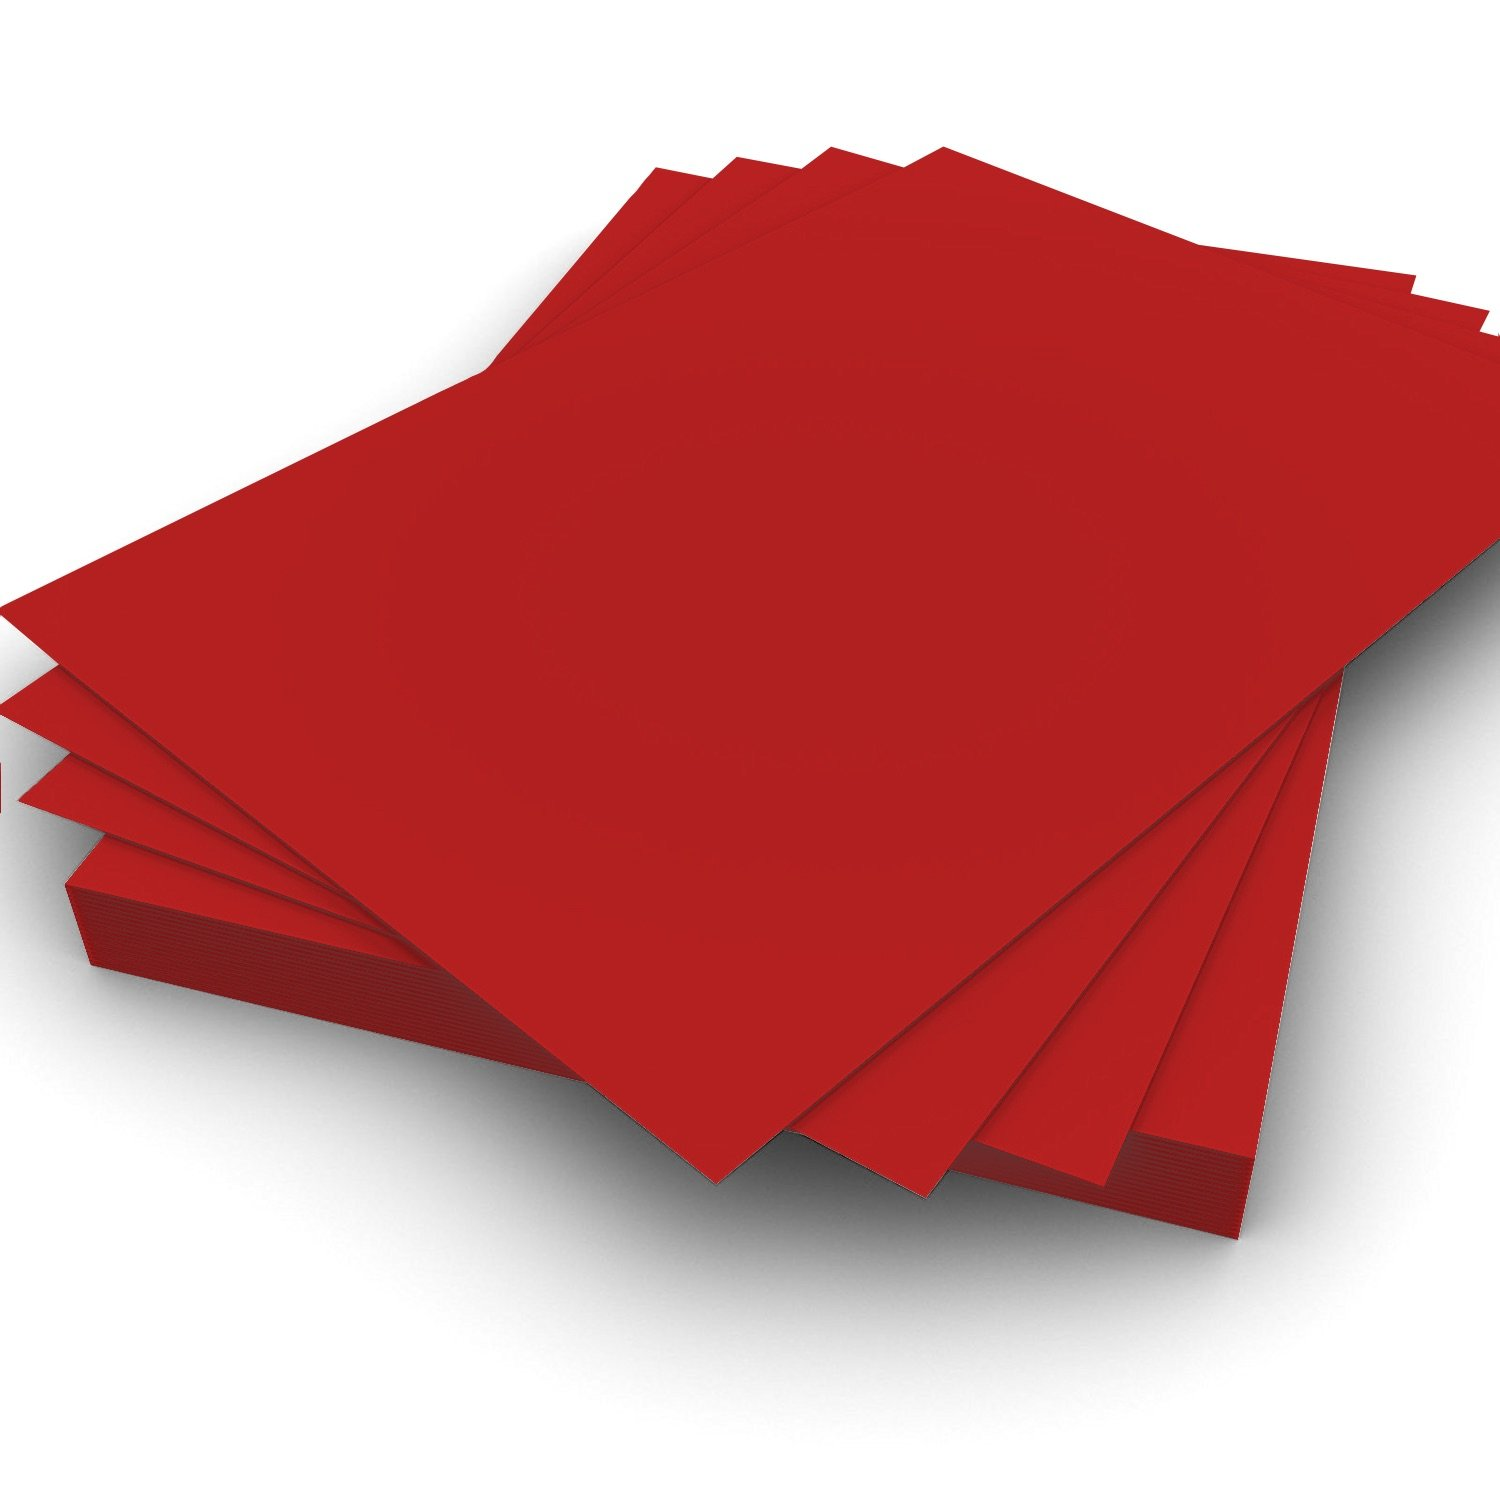 A4 90gsm Plain Red high quality smooth paper Pack of 2000 Perfect for Printing on and general office use  by Party Decor